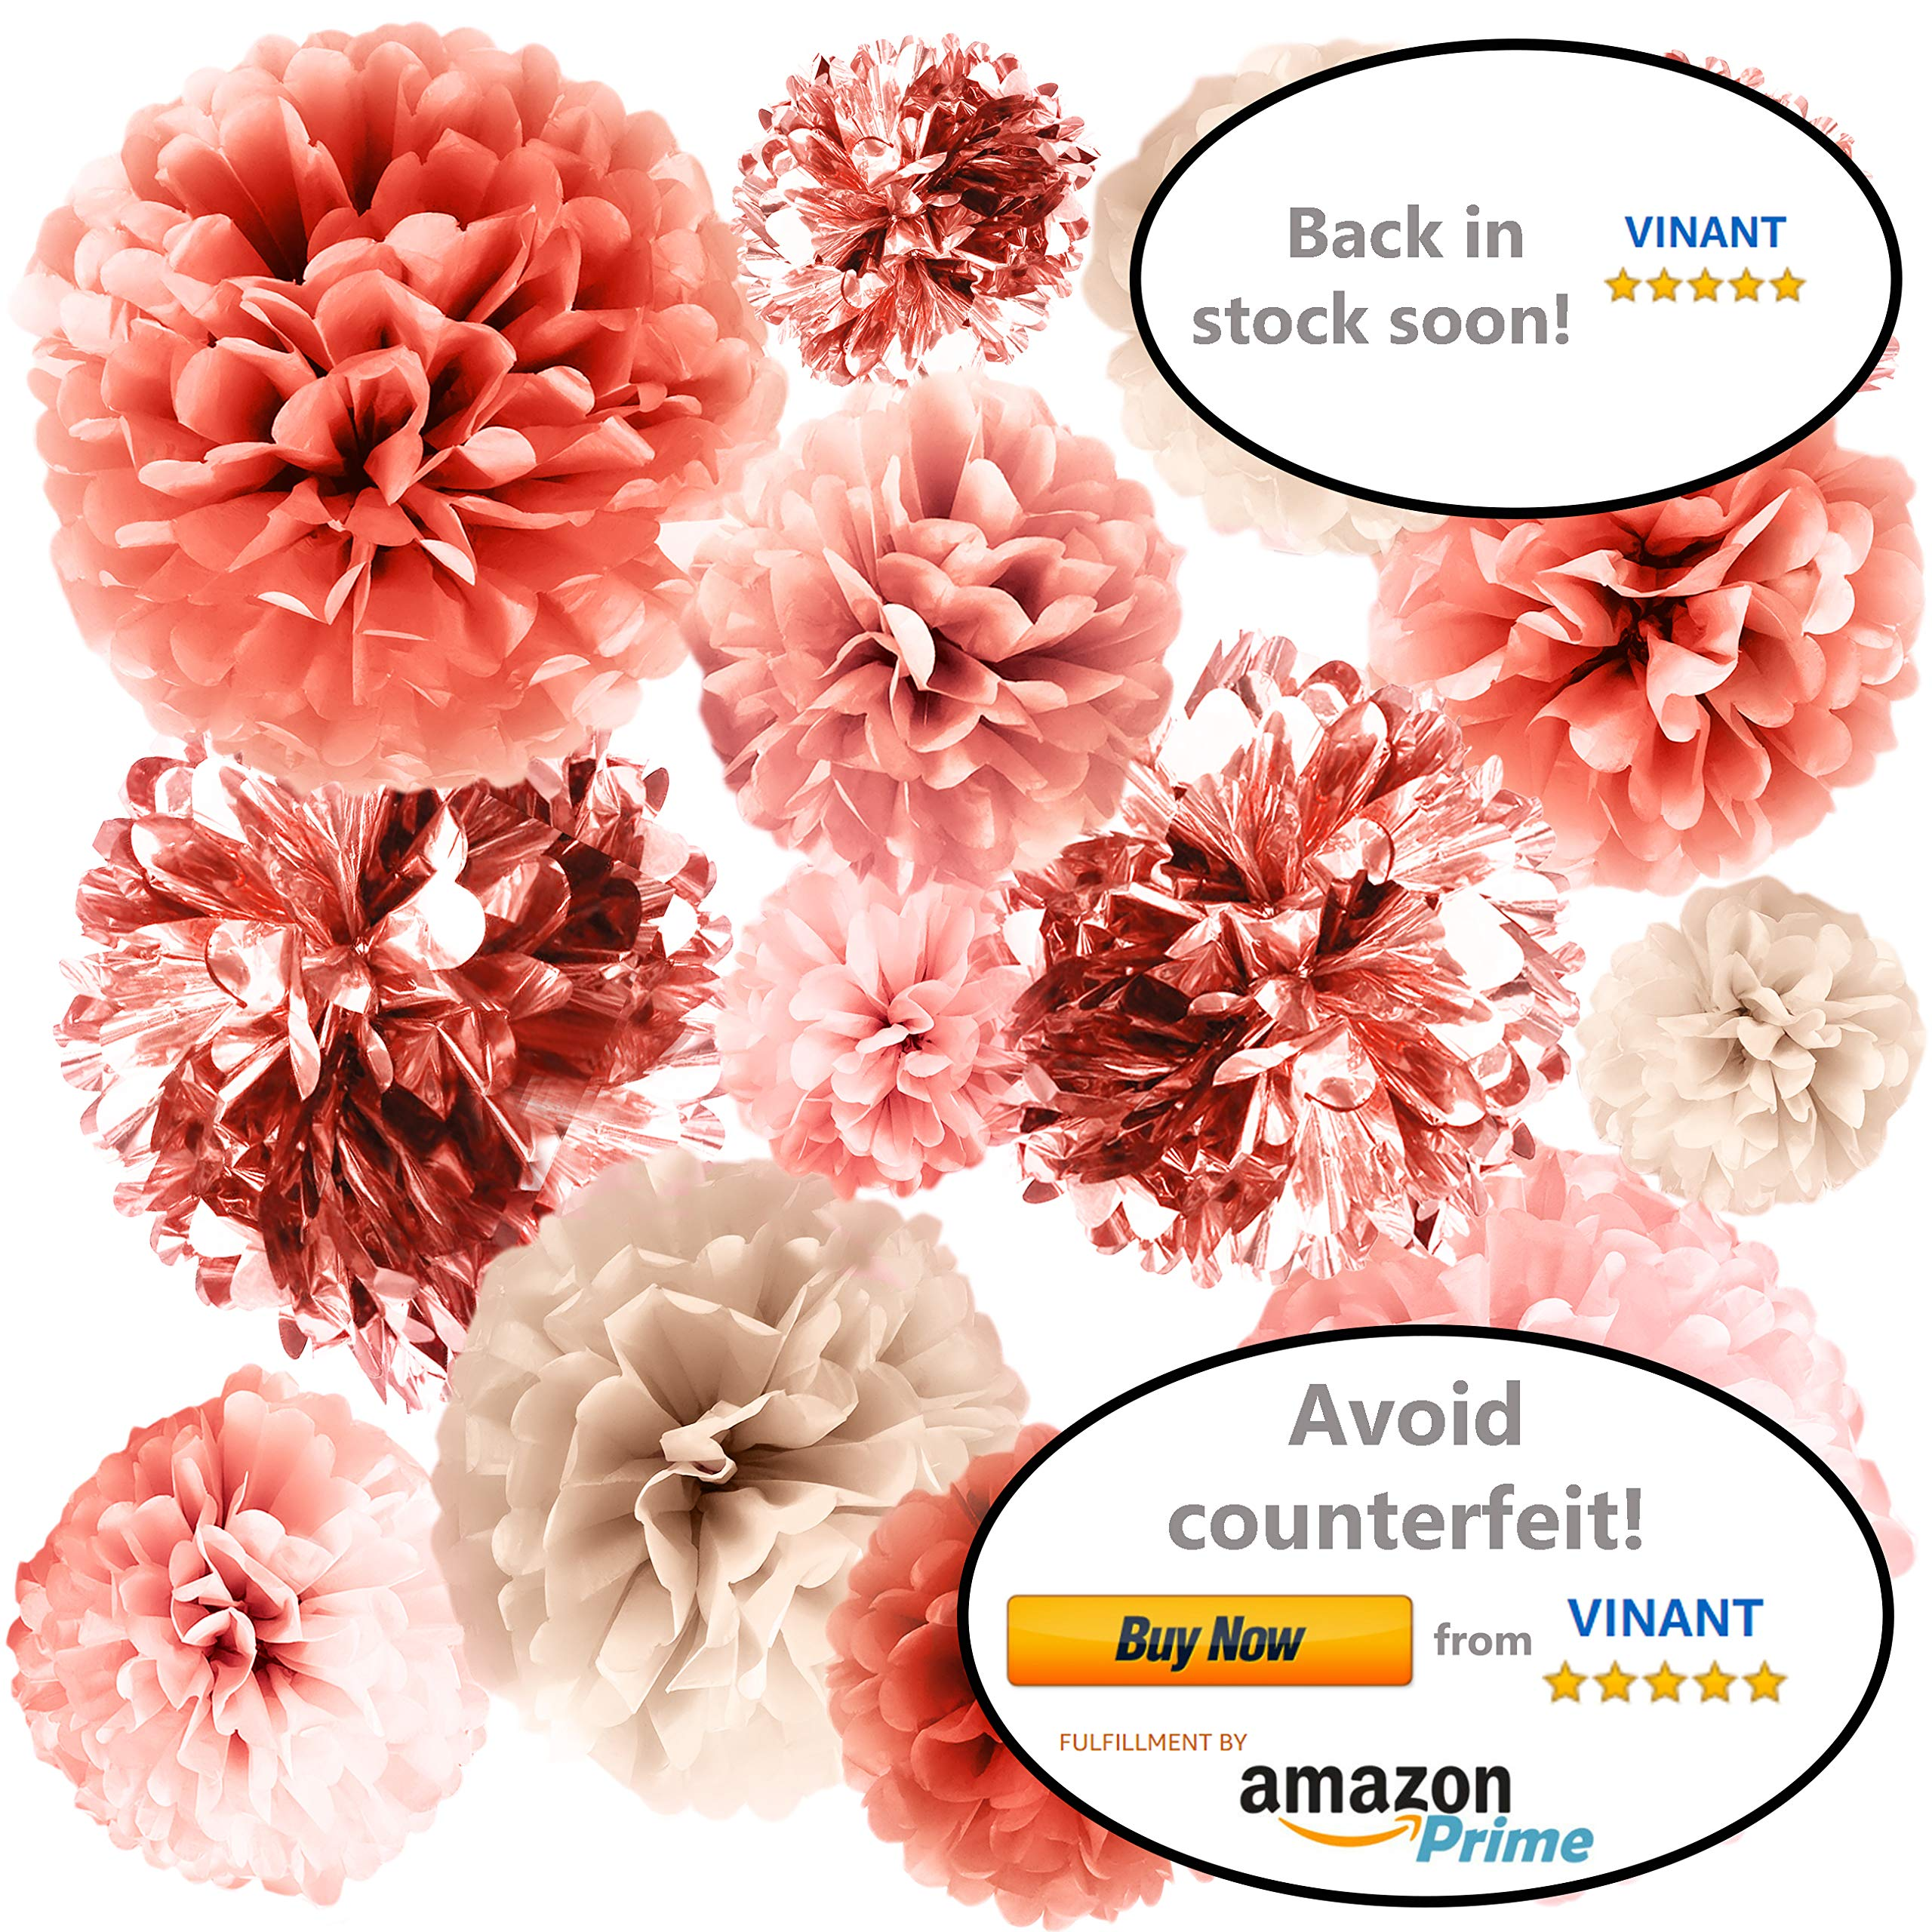 VINANT 20 PCS Rose Gold Party Decorations - Metallic Foil and Tissue Paper Pom Poms - Baby Shower - Bridal Shower - Wedding - Bachelorette - Birthday Party - 14'', 10'', 8'', 6''